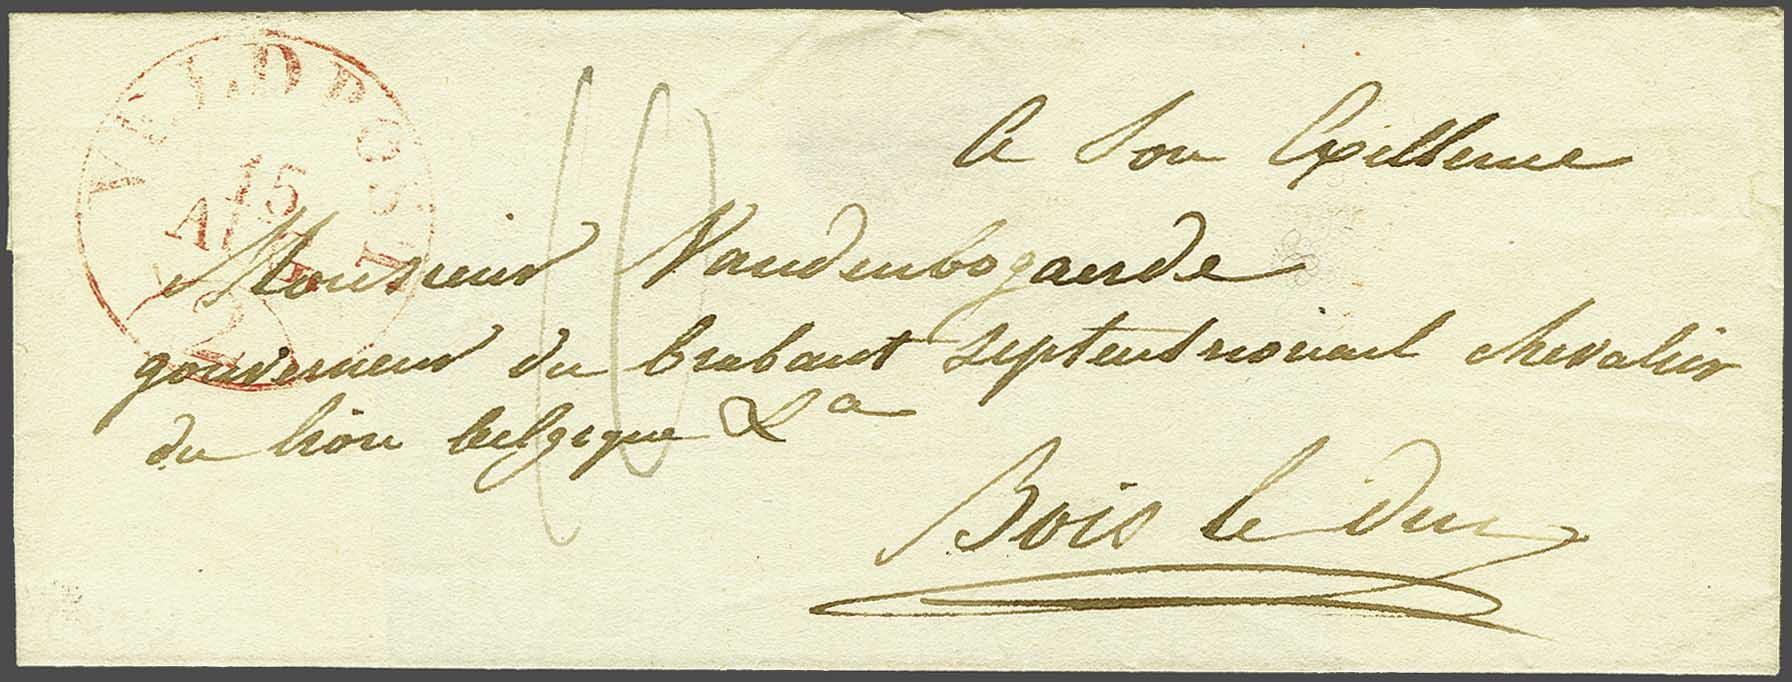 Lot 1709 - Netherlands and former colonies Netherlands -  Corinphila Veilingen Auction 245-246 Day 3 - Netherlands and former colonies - Single lots, Collections and lots, Boxes and literature